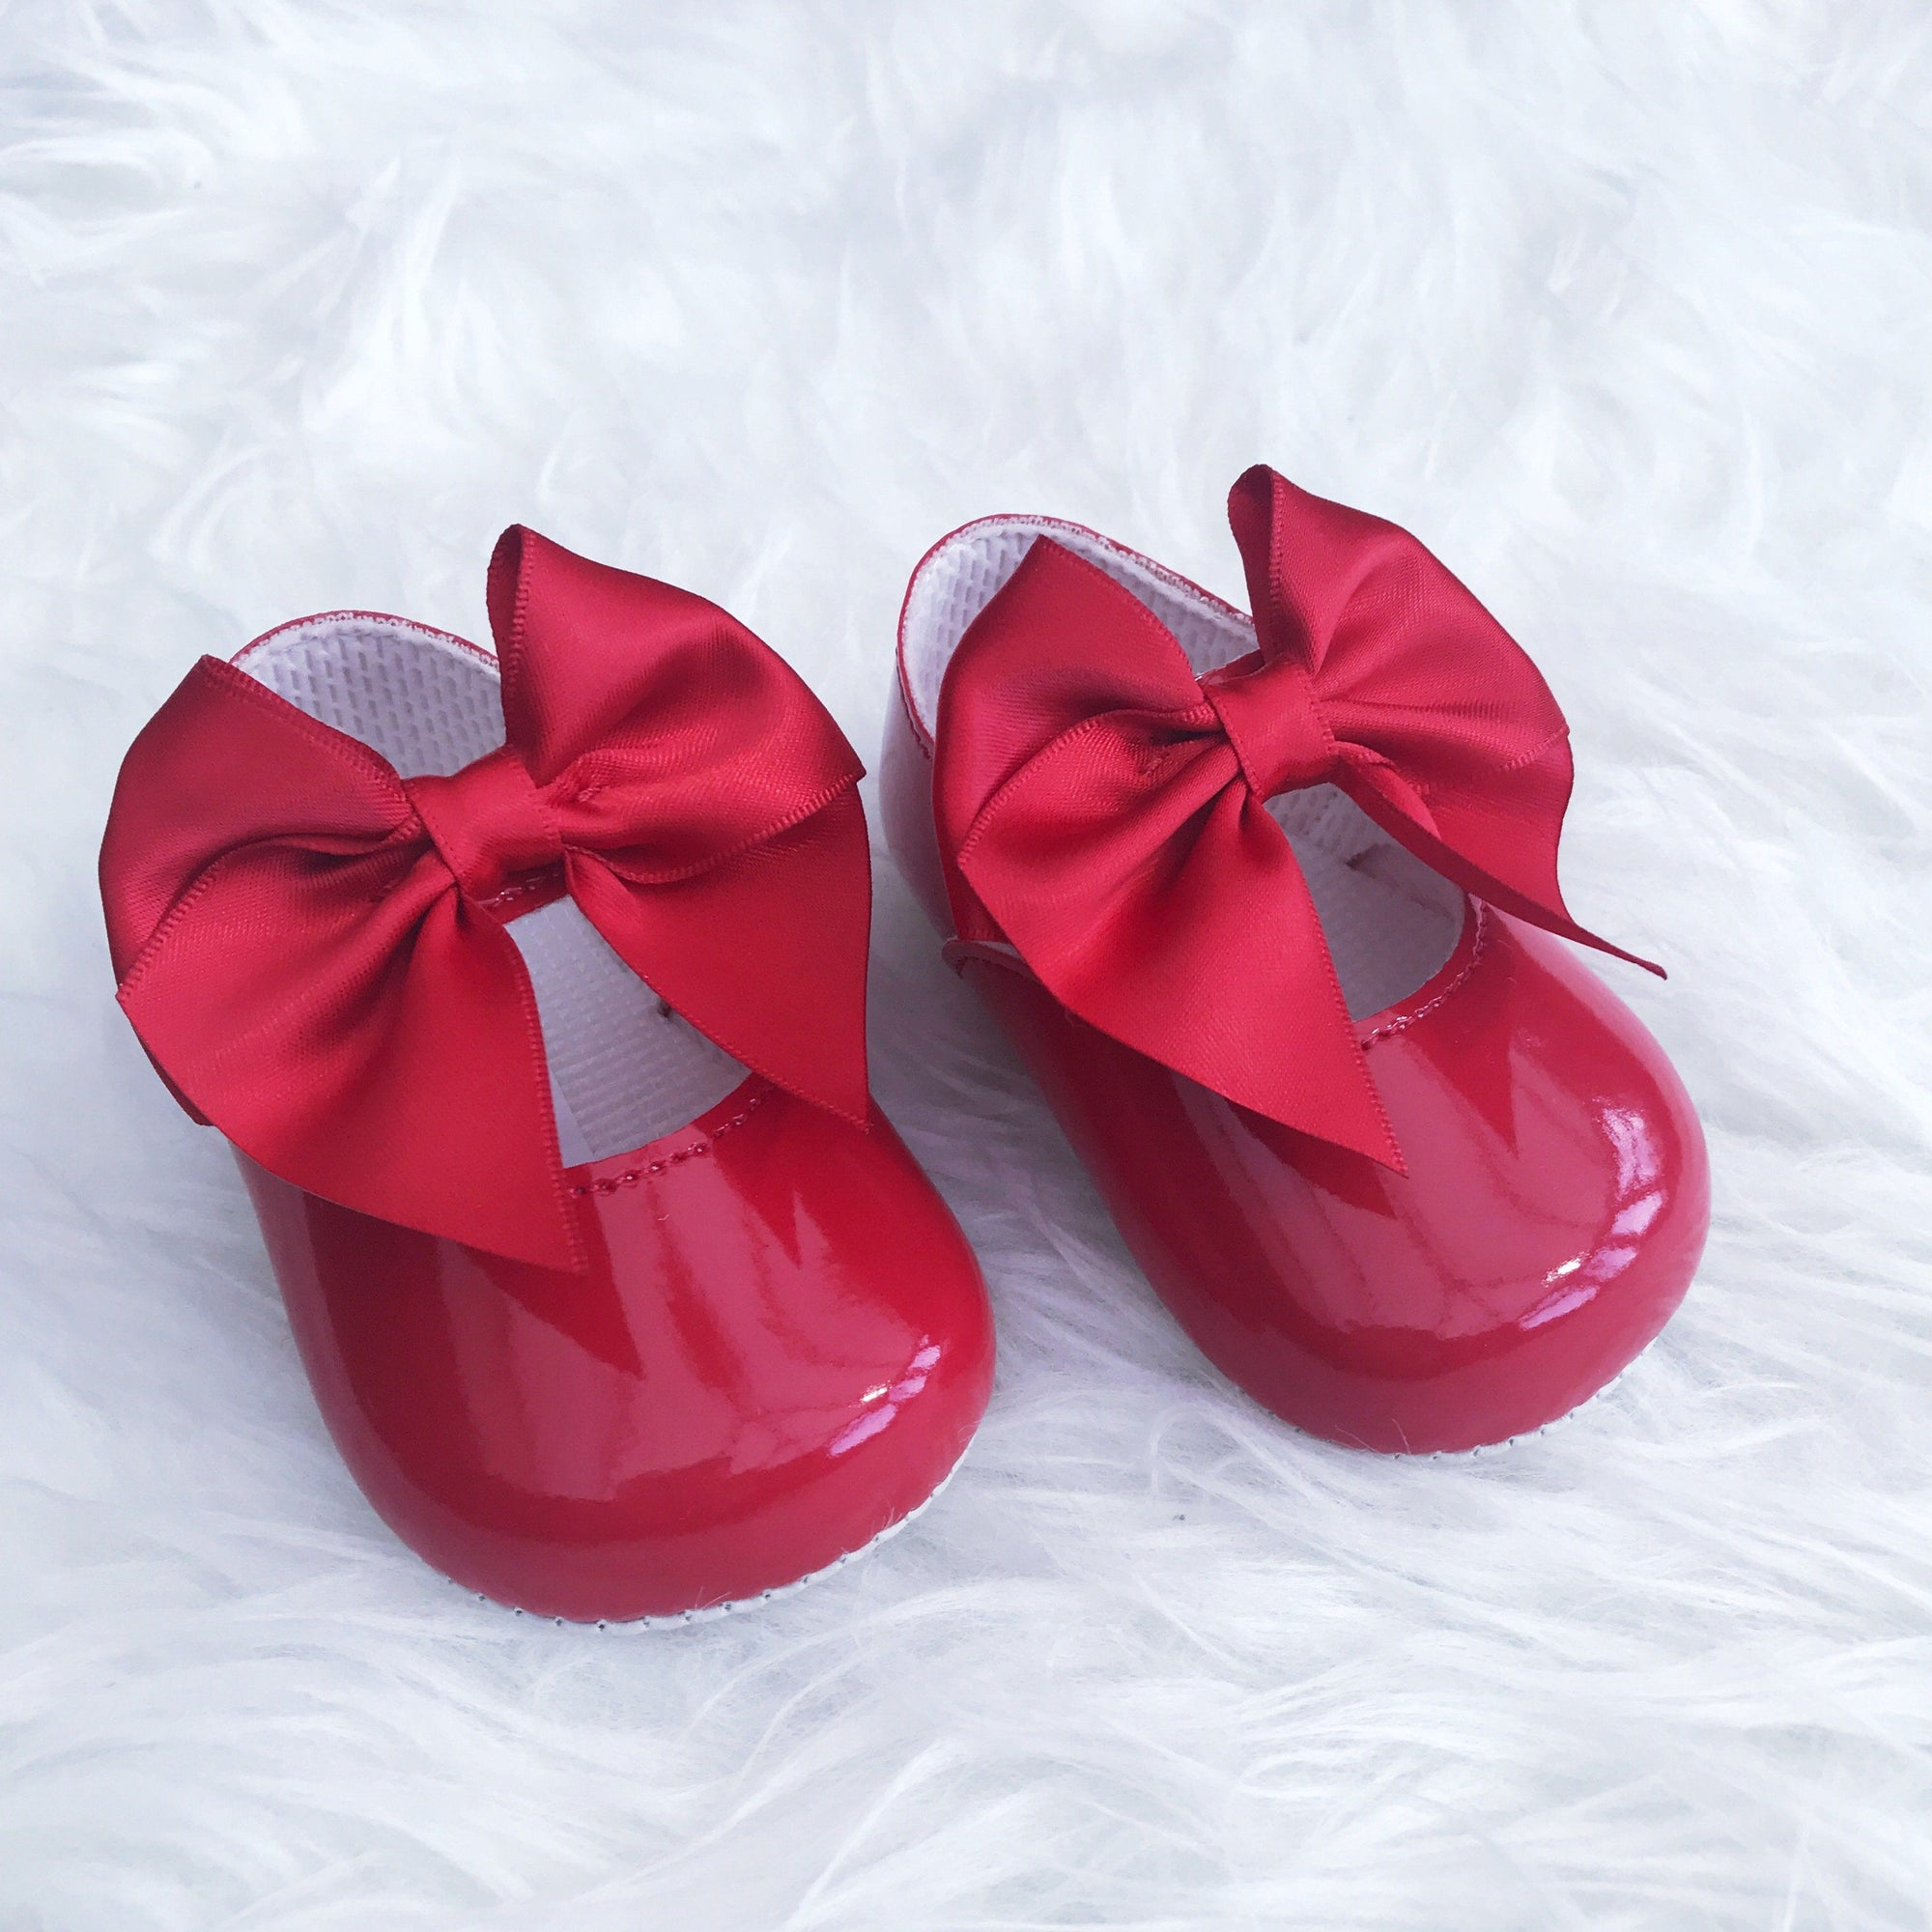 Baypods Red Patent Large Bow Soft Sole Shoes | Millie and John